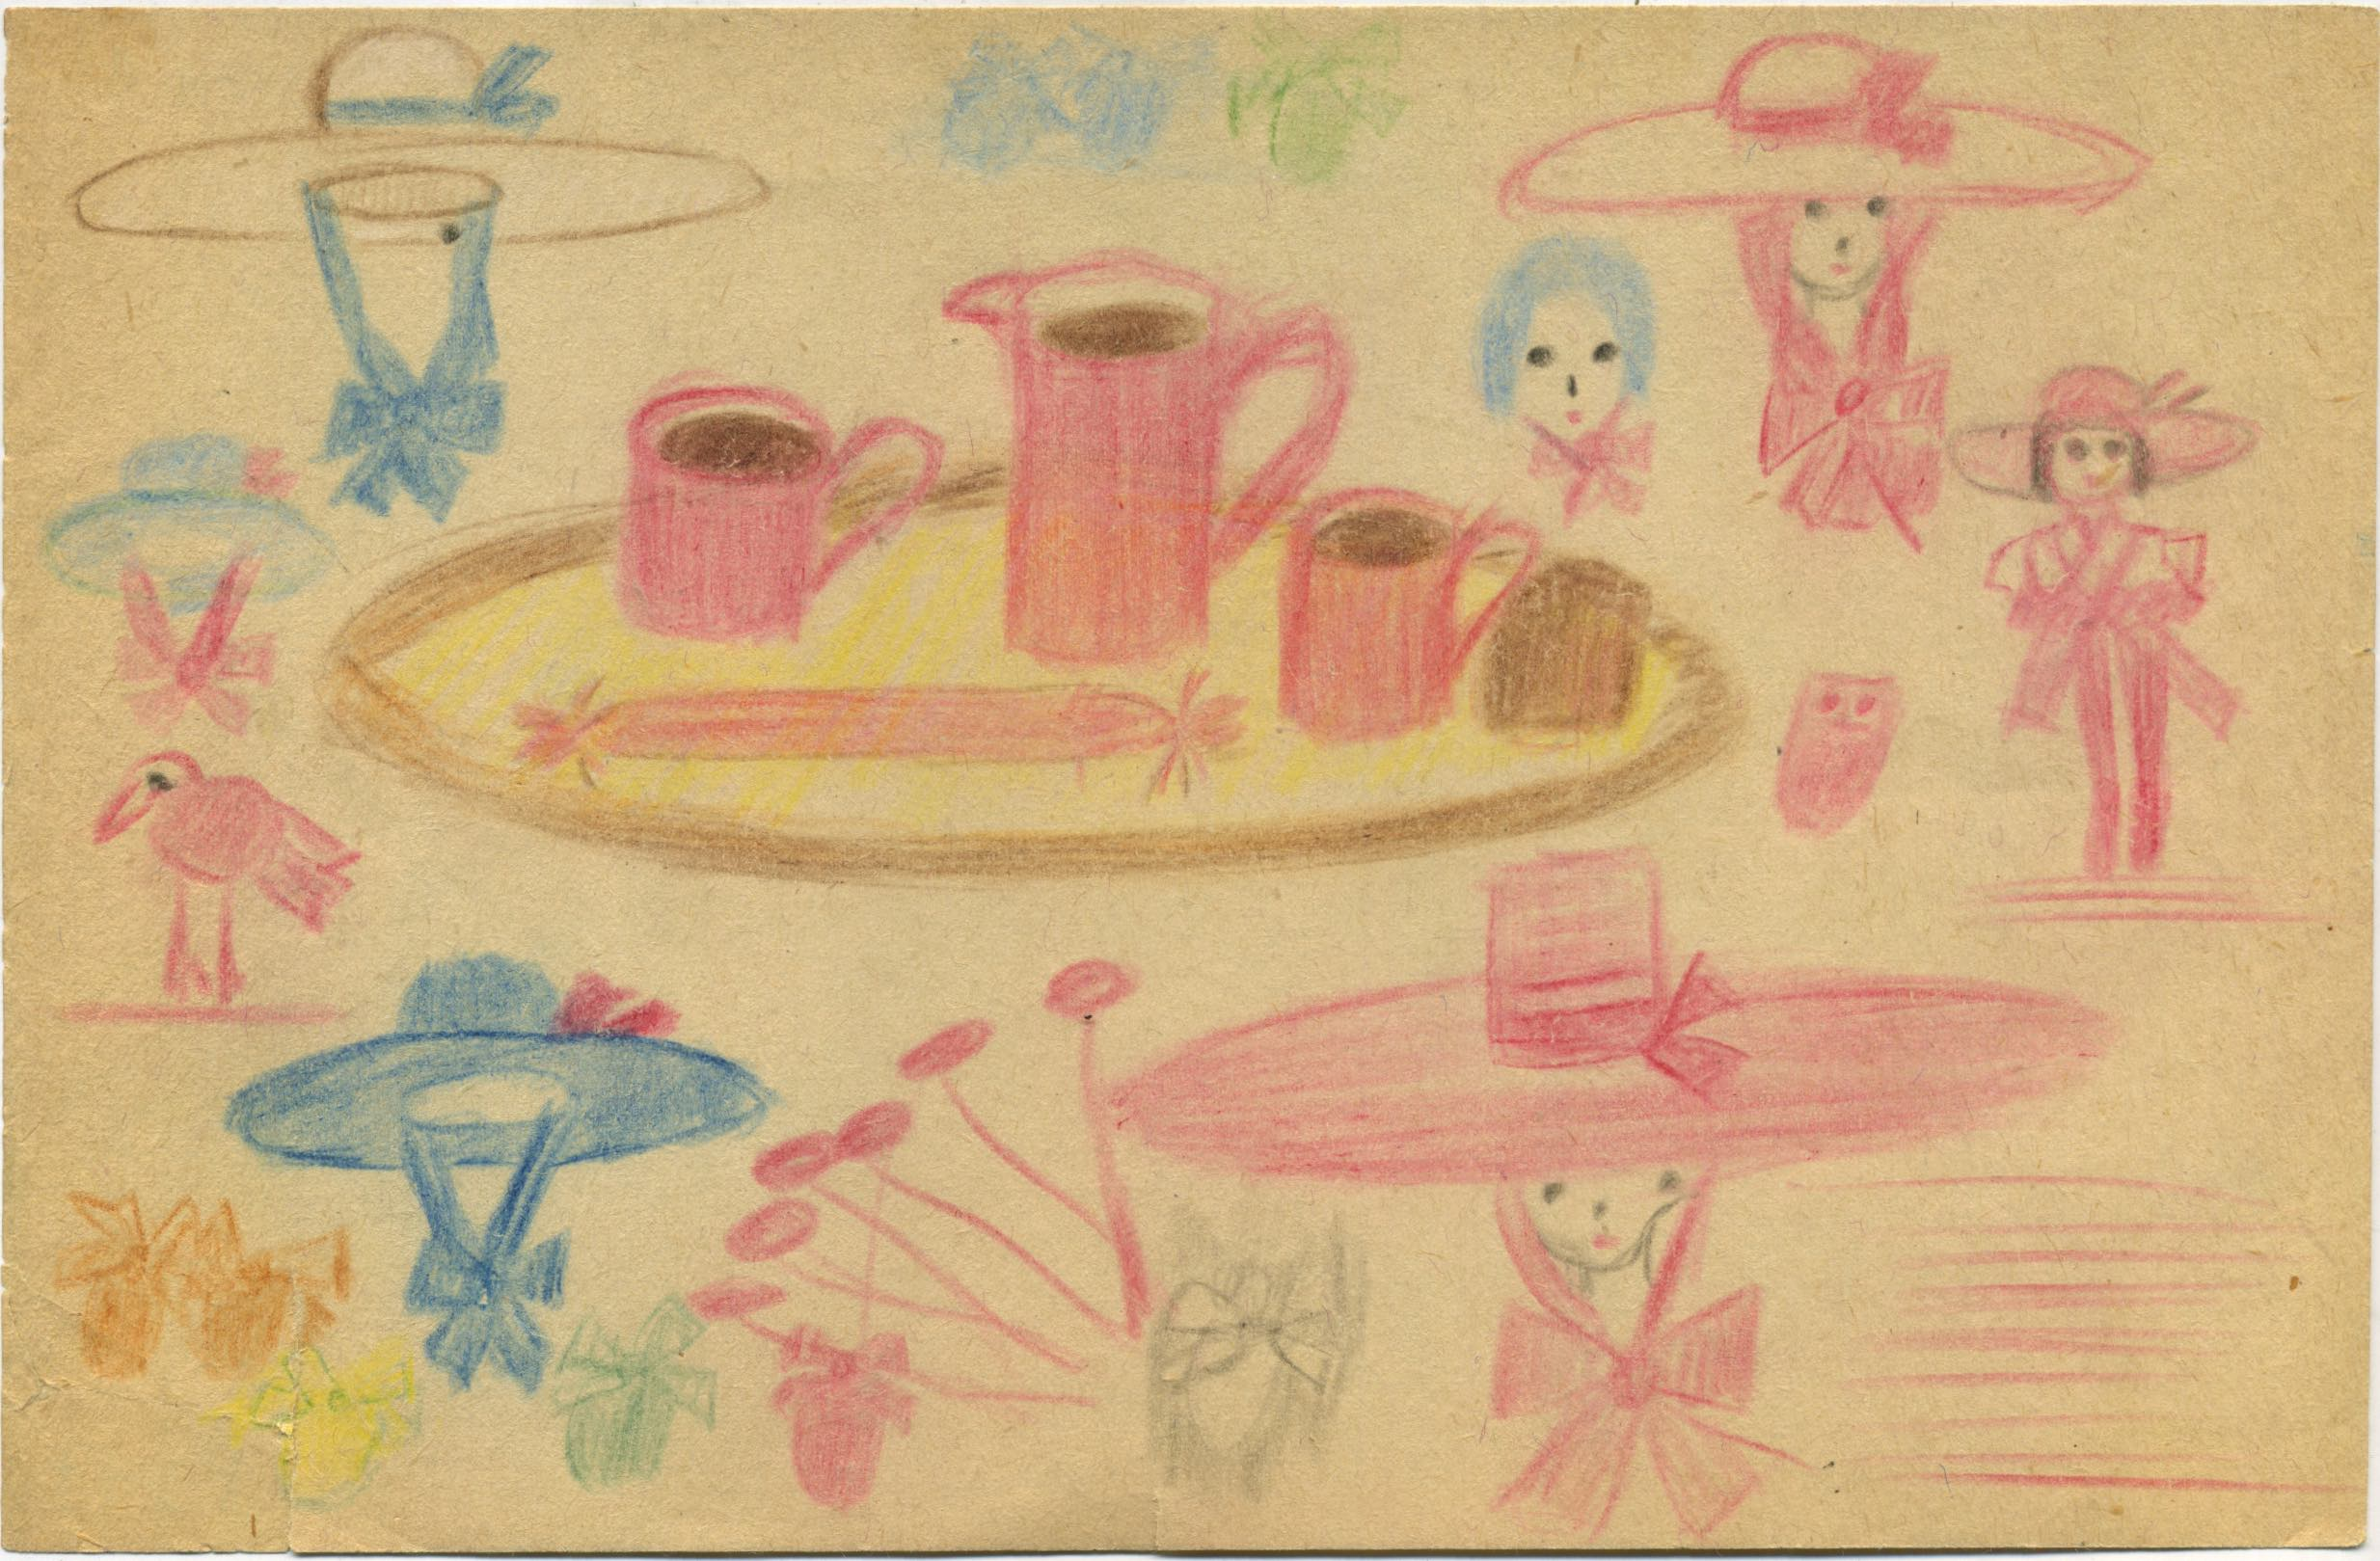 Bertha Wuilleumier    Untitled  , 1953 Color pencil on paper 5.4 x 8.2 inches 13.7 x 20.8 cm BWu 4